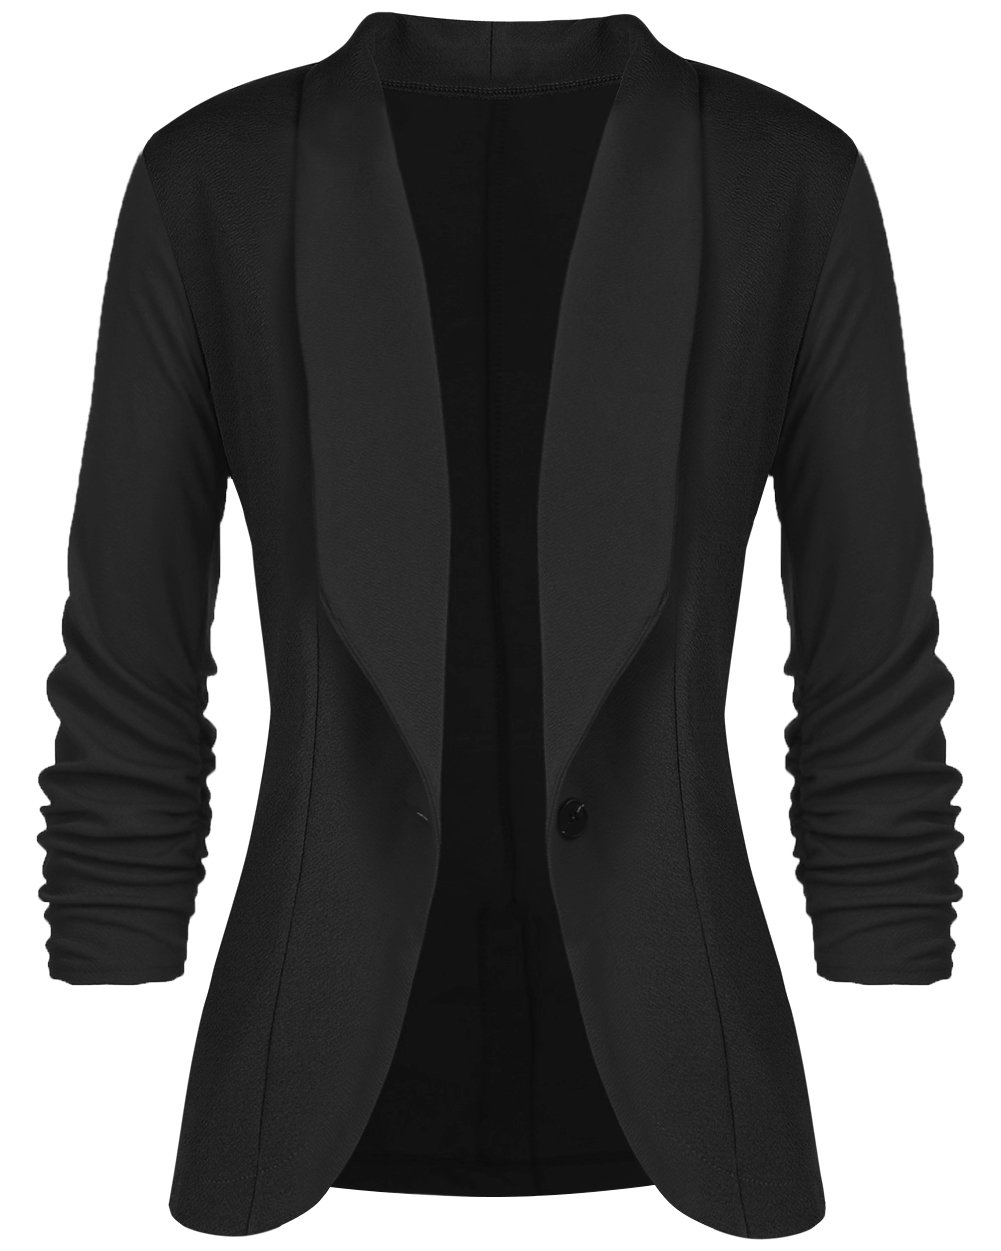 sanatty Women's 3/4 Ruched Sleeve Open Front Lightweight Work Office Blazer Jacket,Black,Small